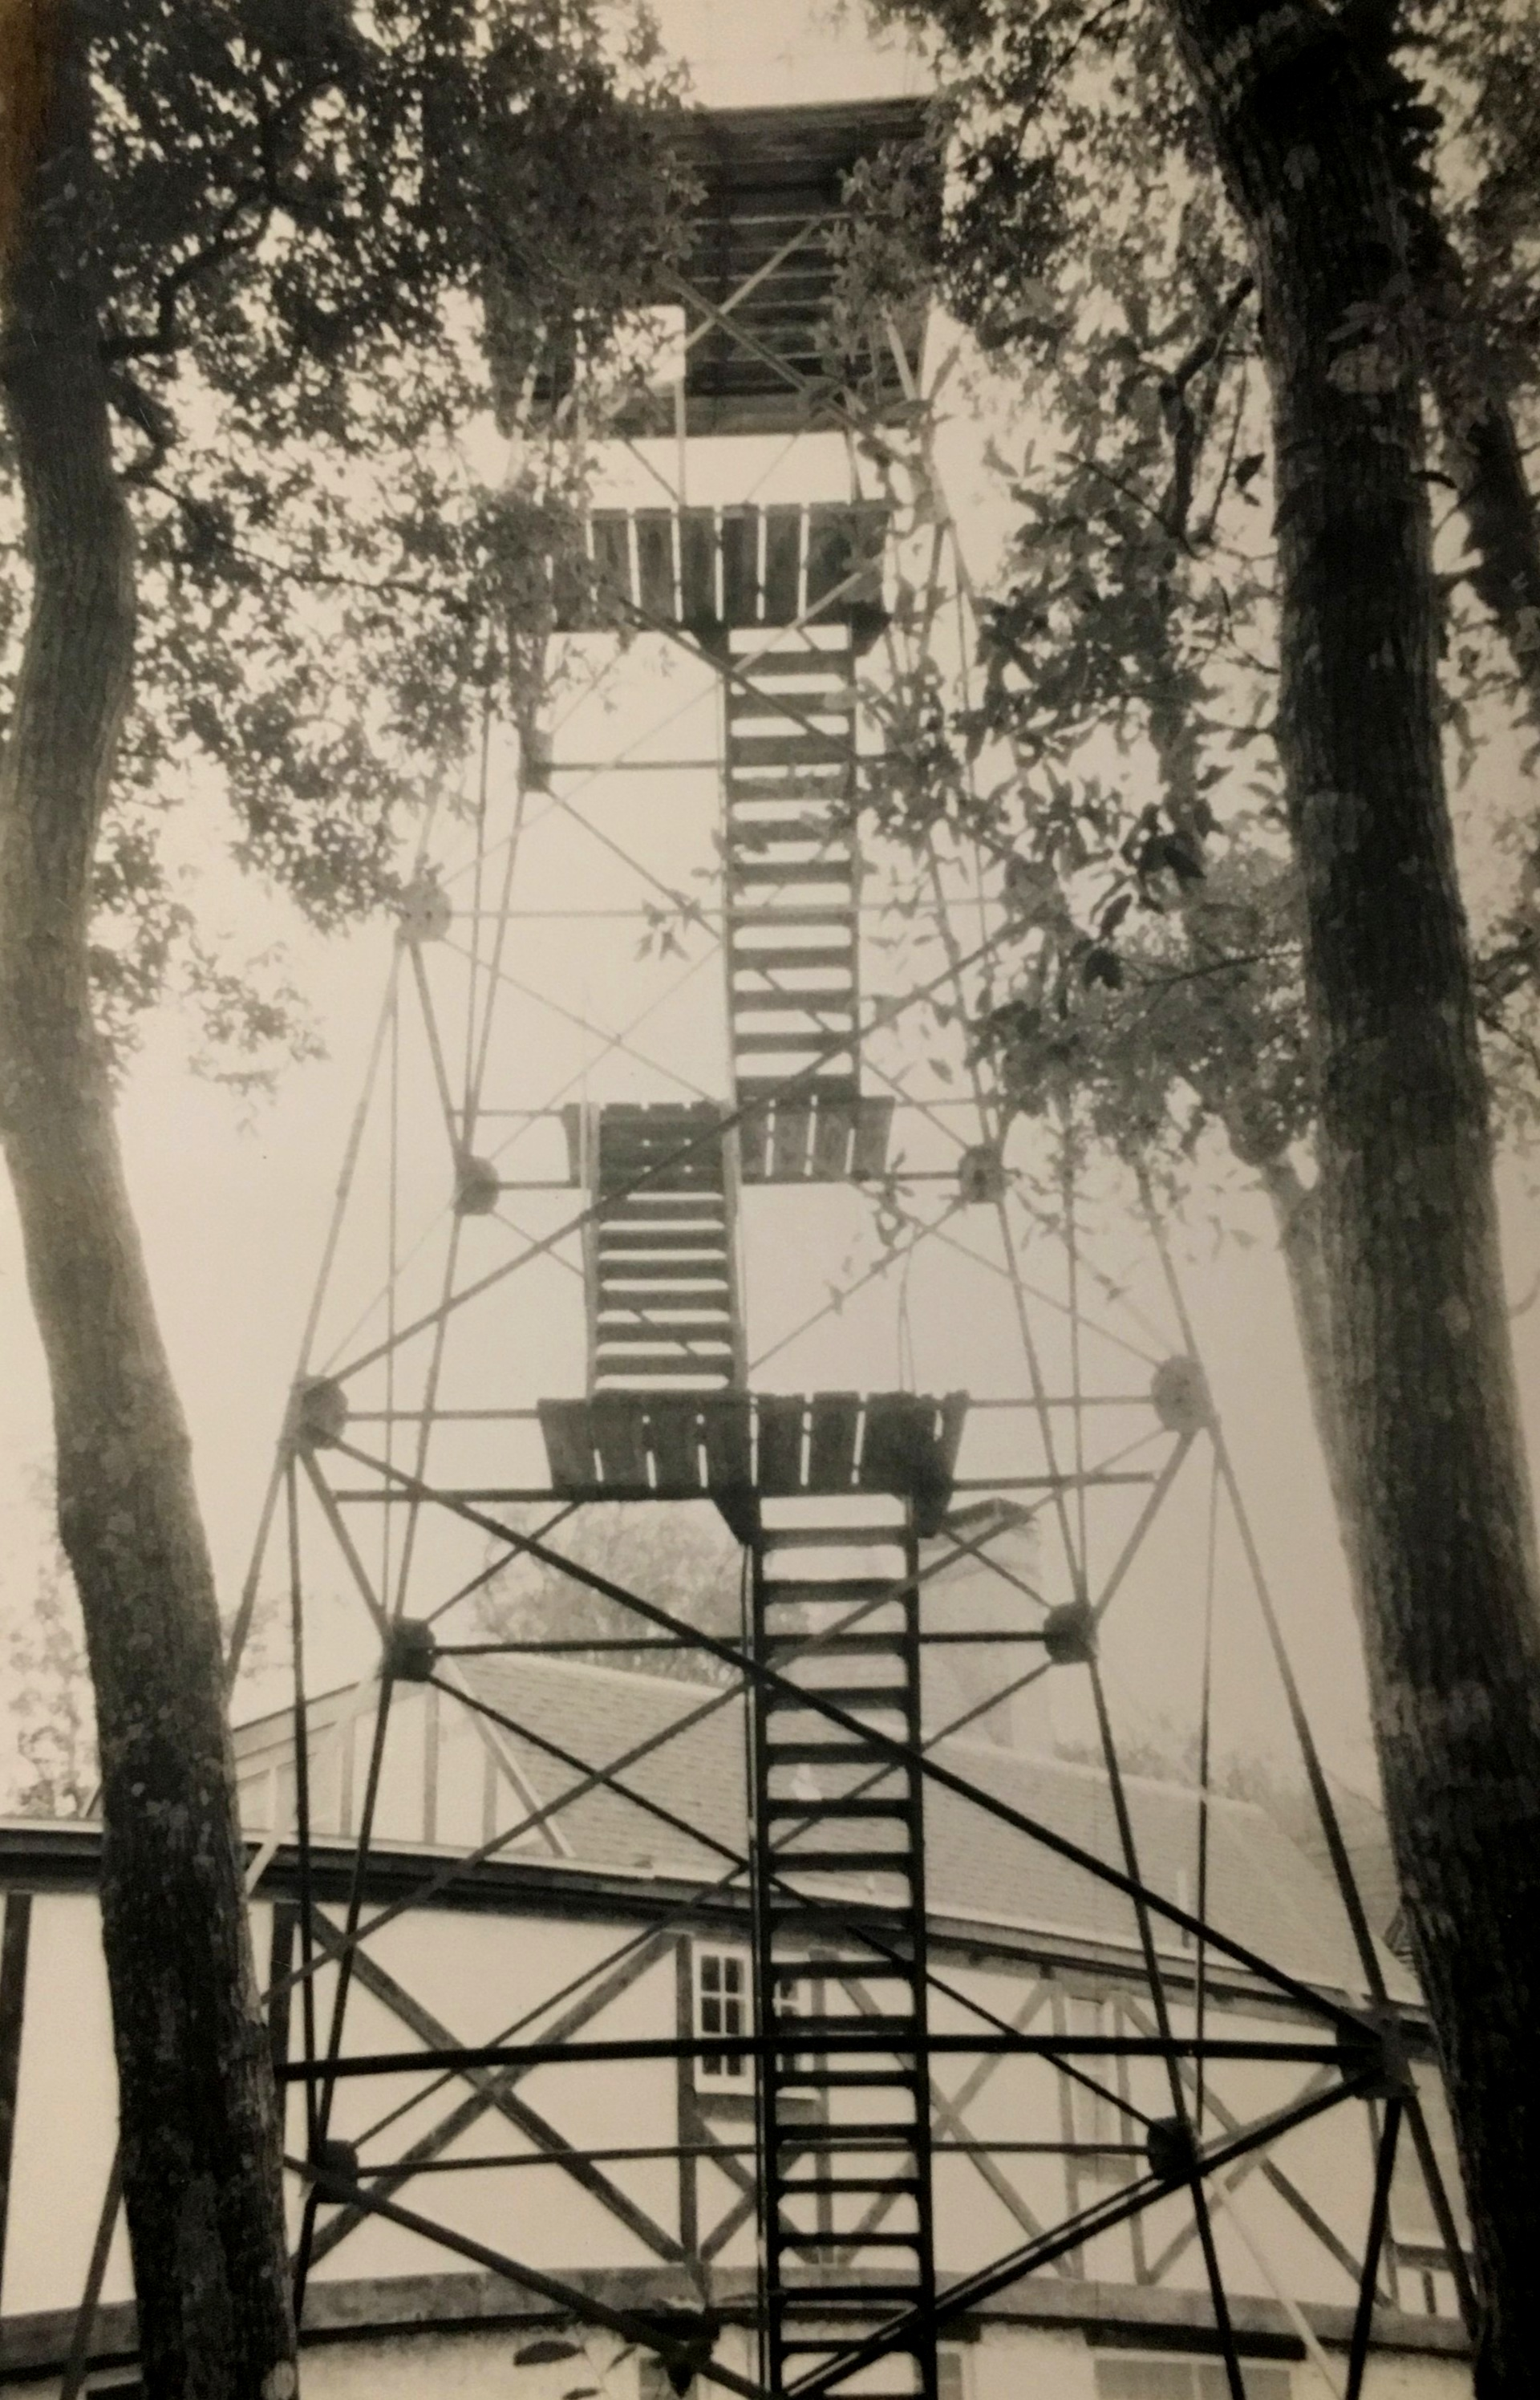 Observation tower on the property.  Image courtesy of the Betz family. All Rights Reserved – Do not reproduce.